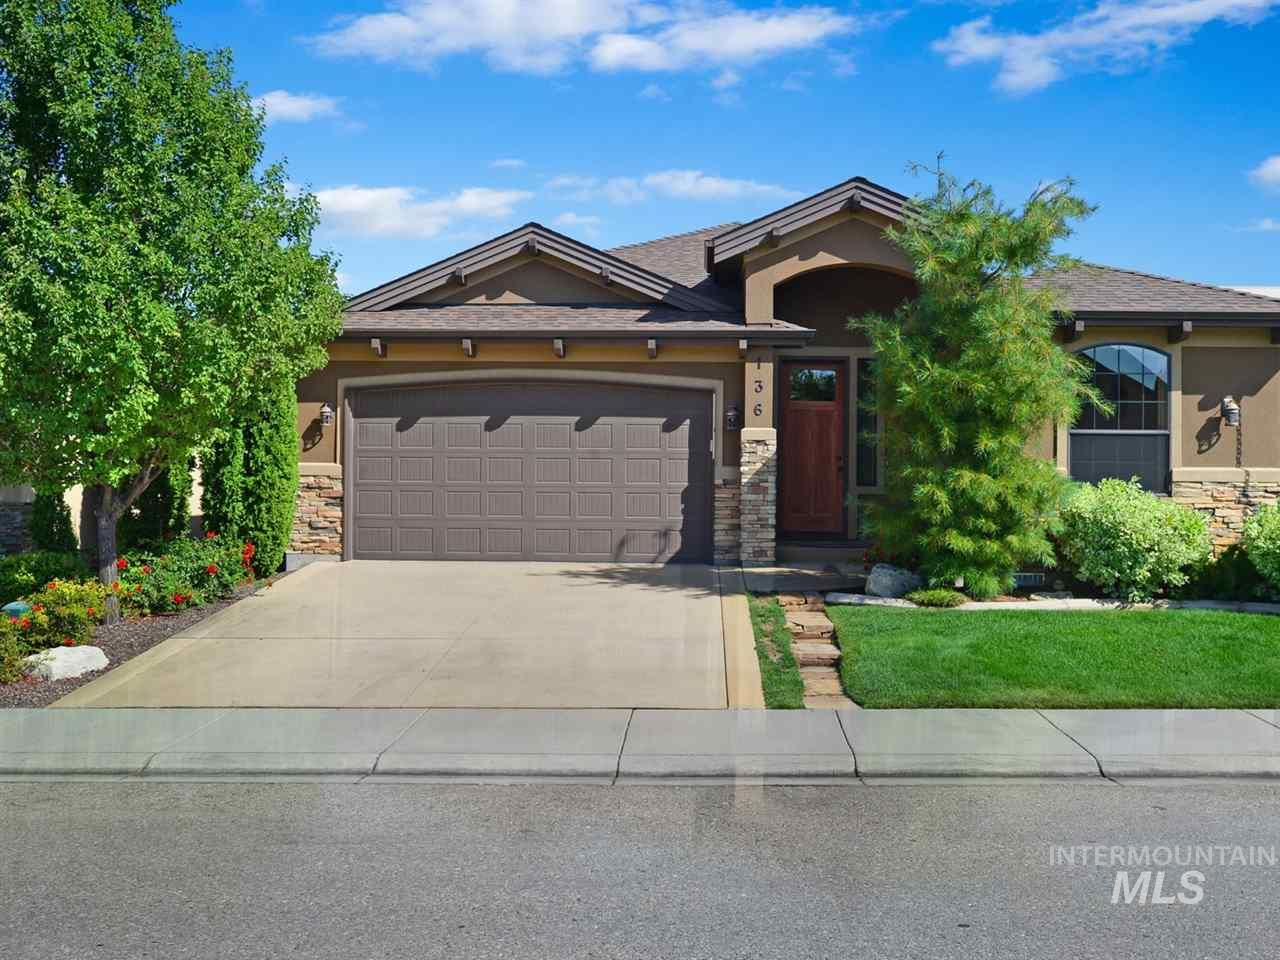 Upscale single level in mission inspired community. Exterior landscape maintenance provided by HOA. Open floor plan, fabulous kitchen & baths, custom wood shutters throughout, no homes behind. Beautiful rec center with large pool. Large 3 car tandem garage. Spotless home, like new!